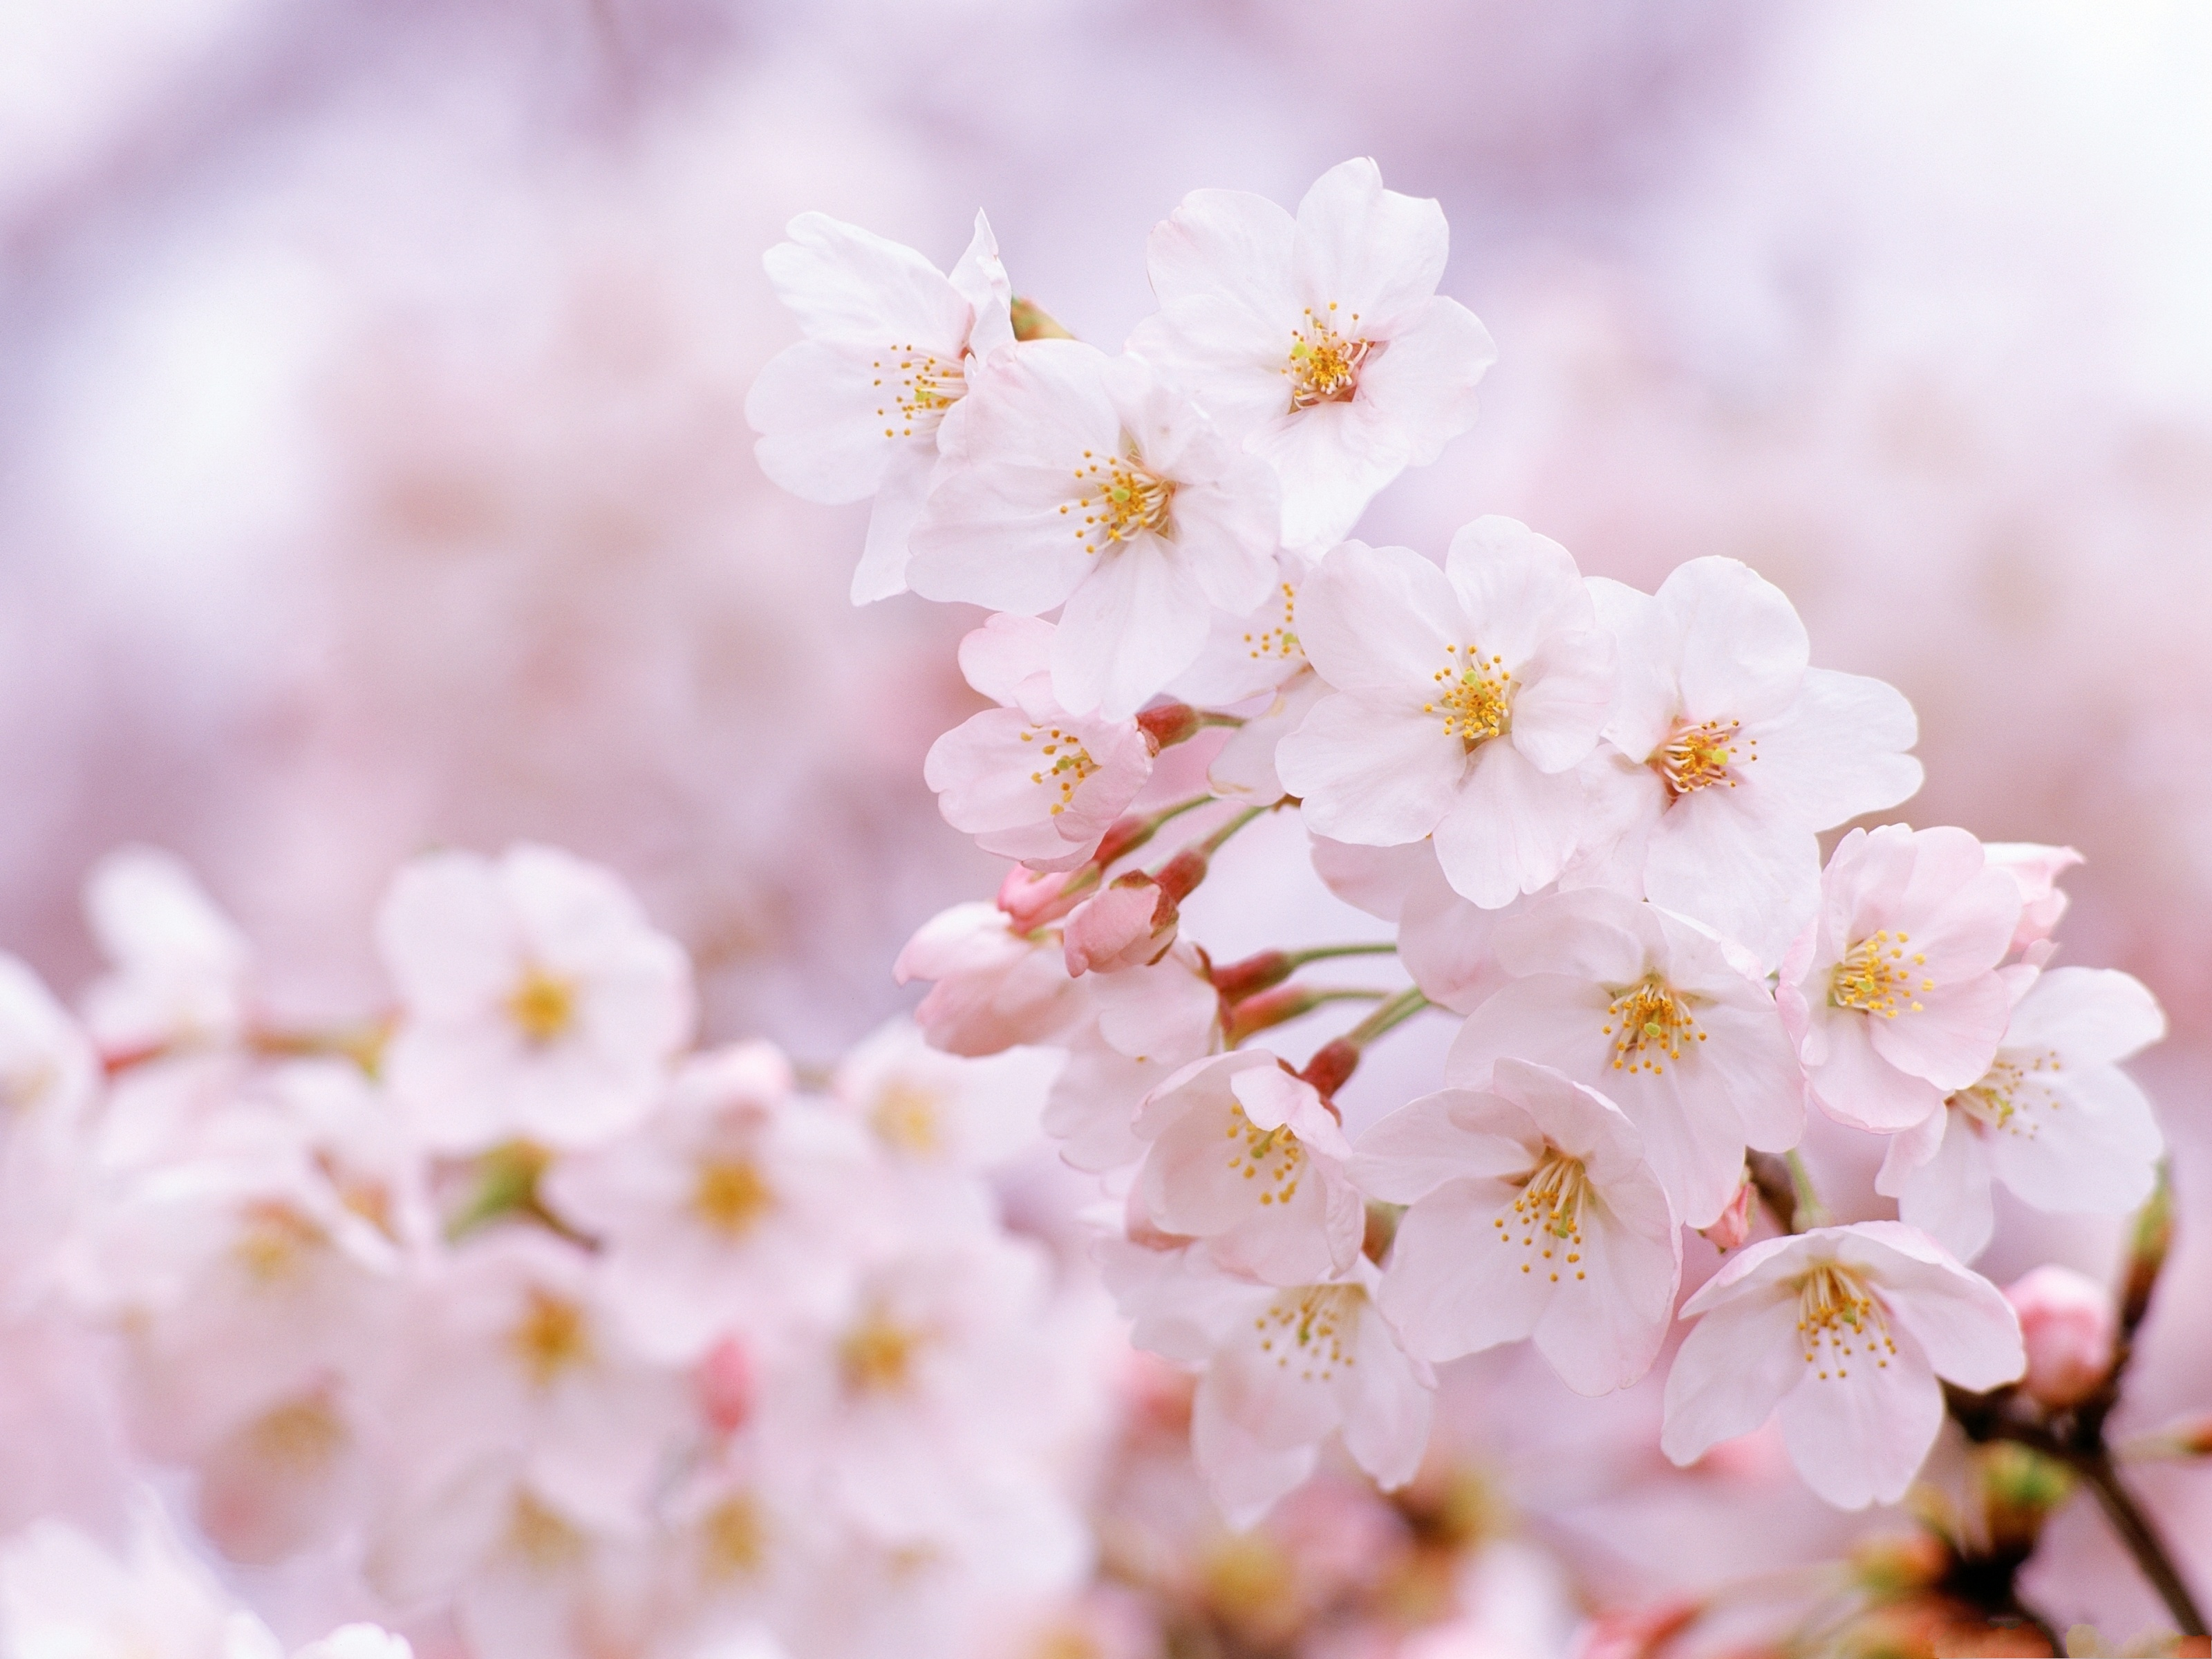 click to free download the wallpaper--Tiny Cherry Flowers, Smile in Beauty, Presenting Incredible Scene 3200X2400 free wallpaper download